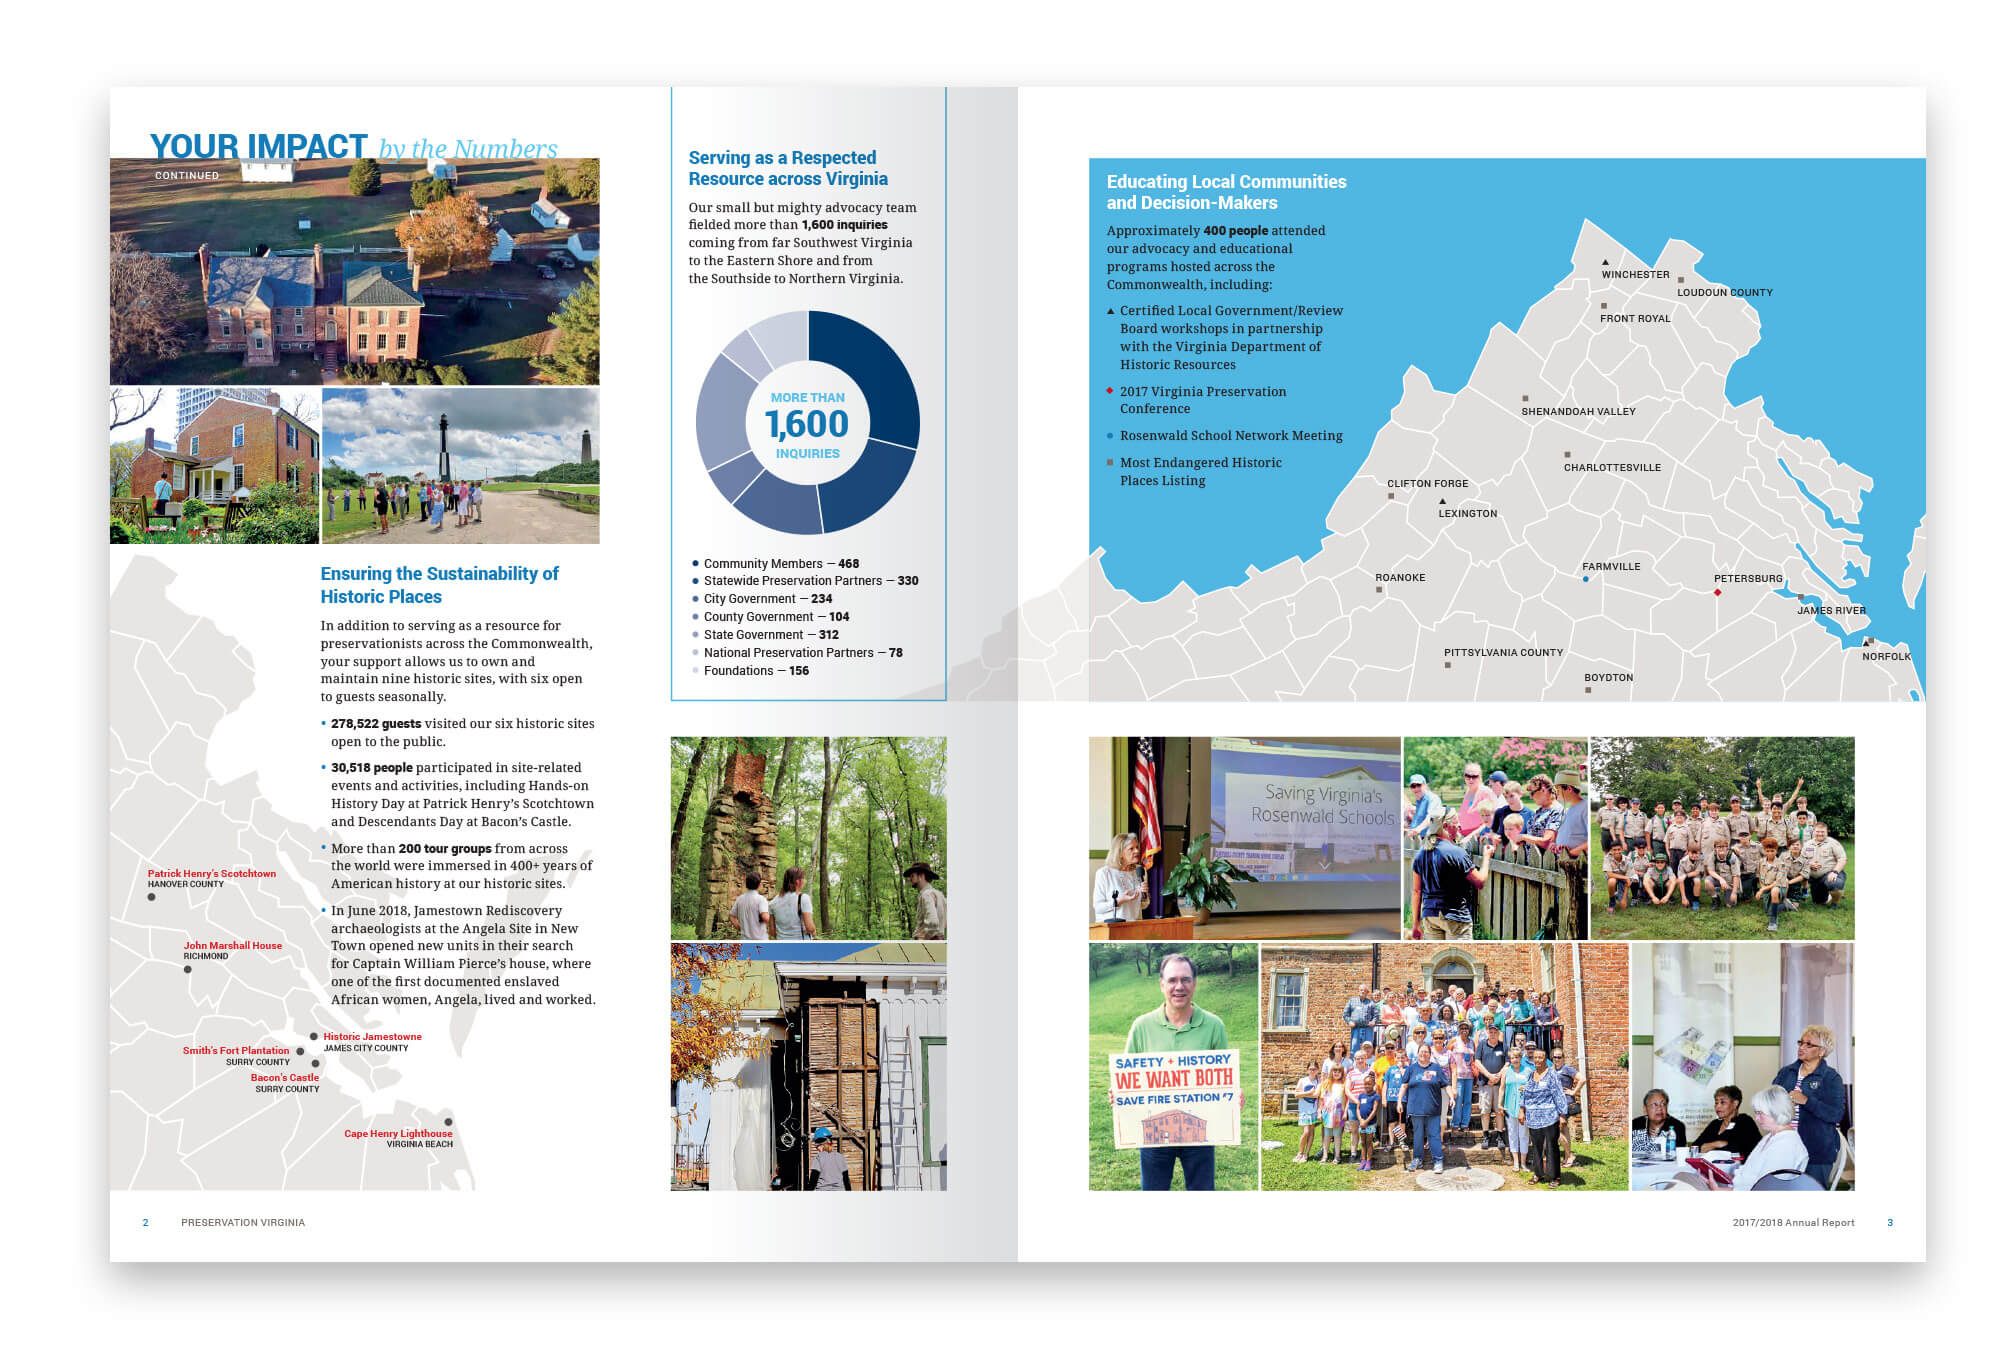 PVA Annual Report impact spread